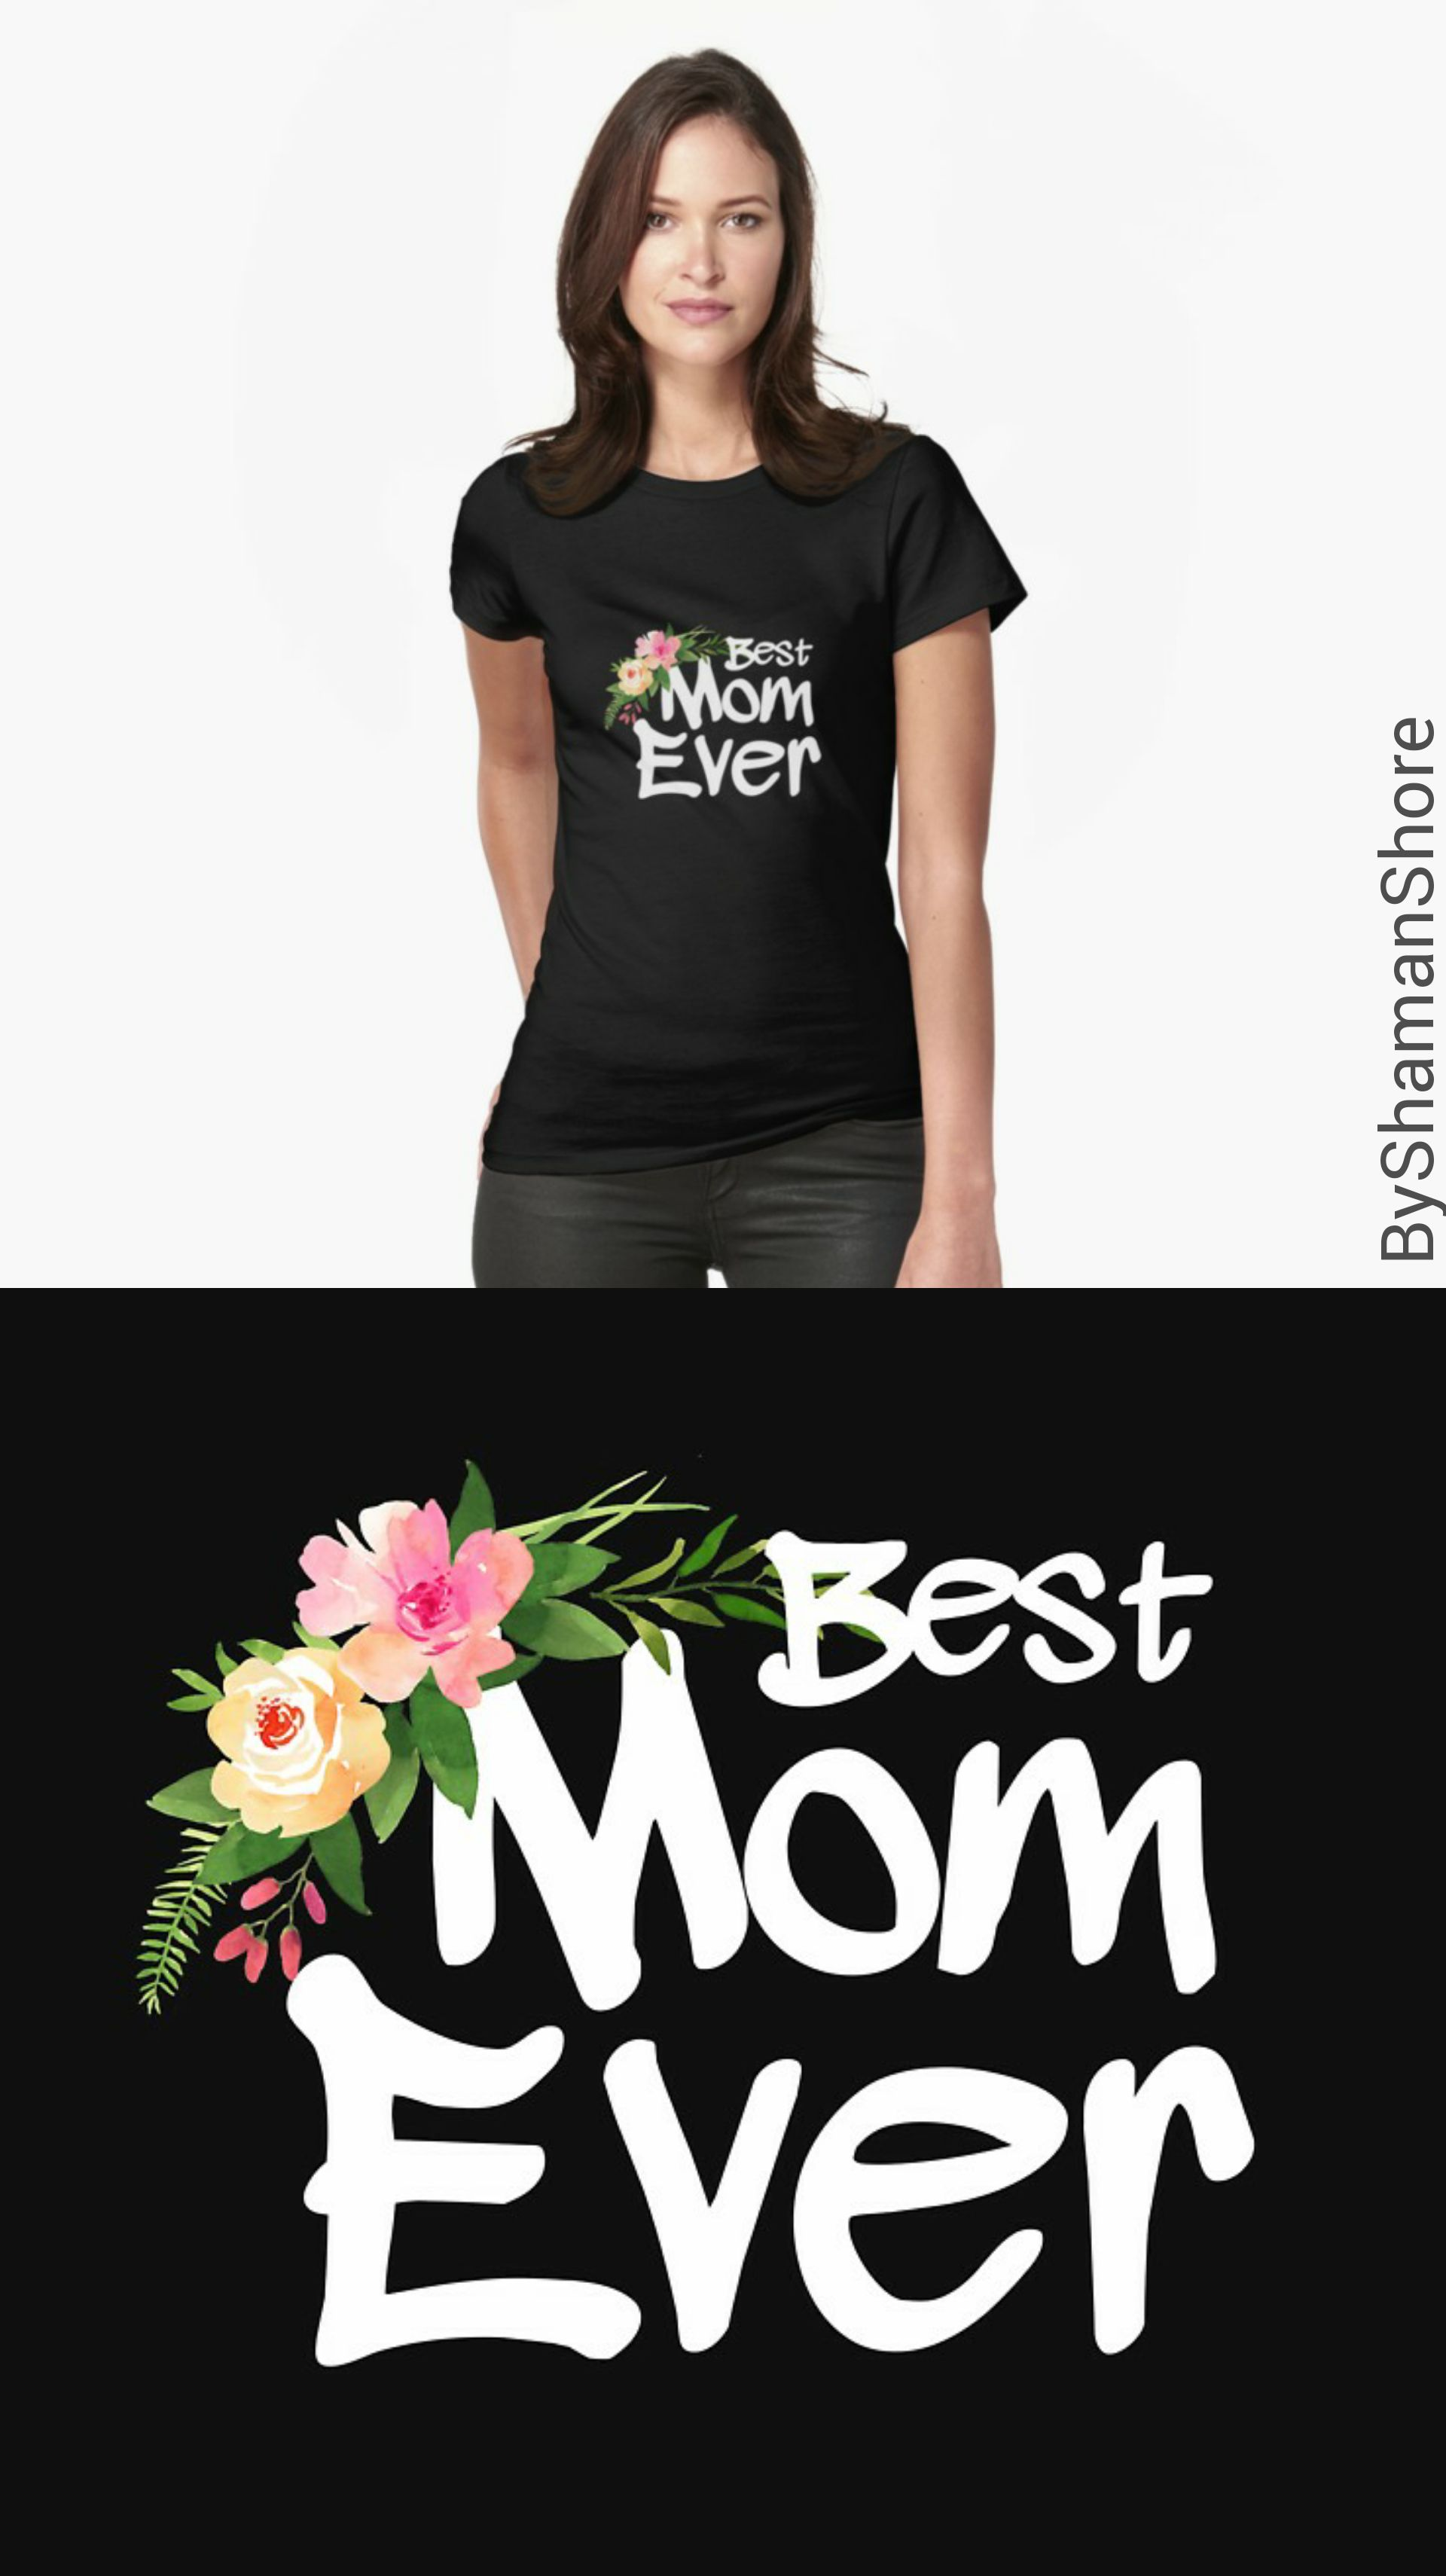 818f5f2f Mothers day gifts, Best Mom Ever quote #byShamanShore | Gift for mom,  graphic saying and flowers, mom gifts, mother gifts | Gifts for mommy, mum